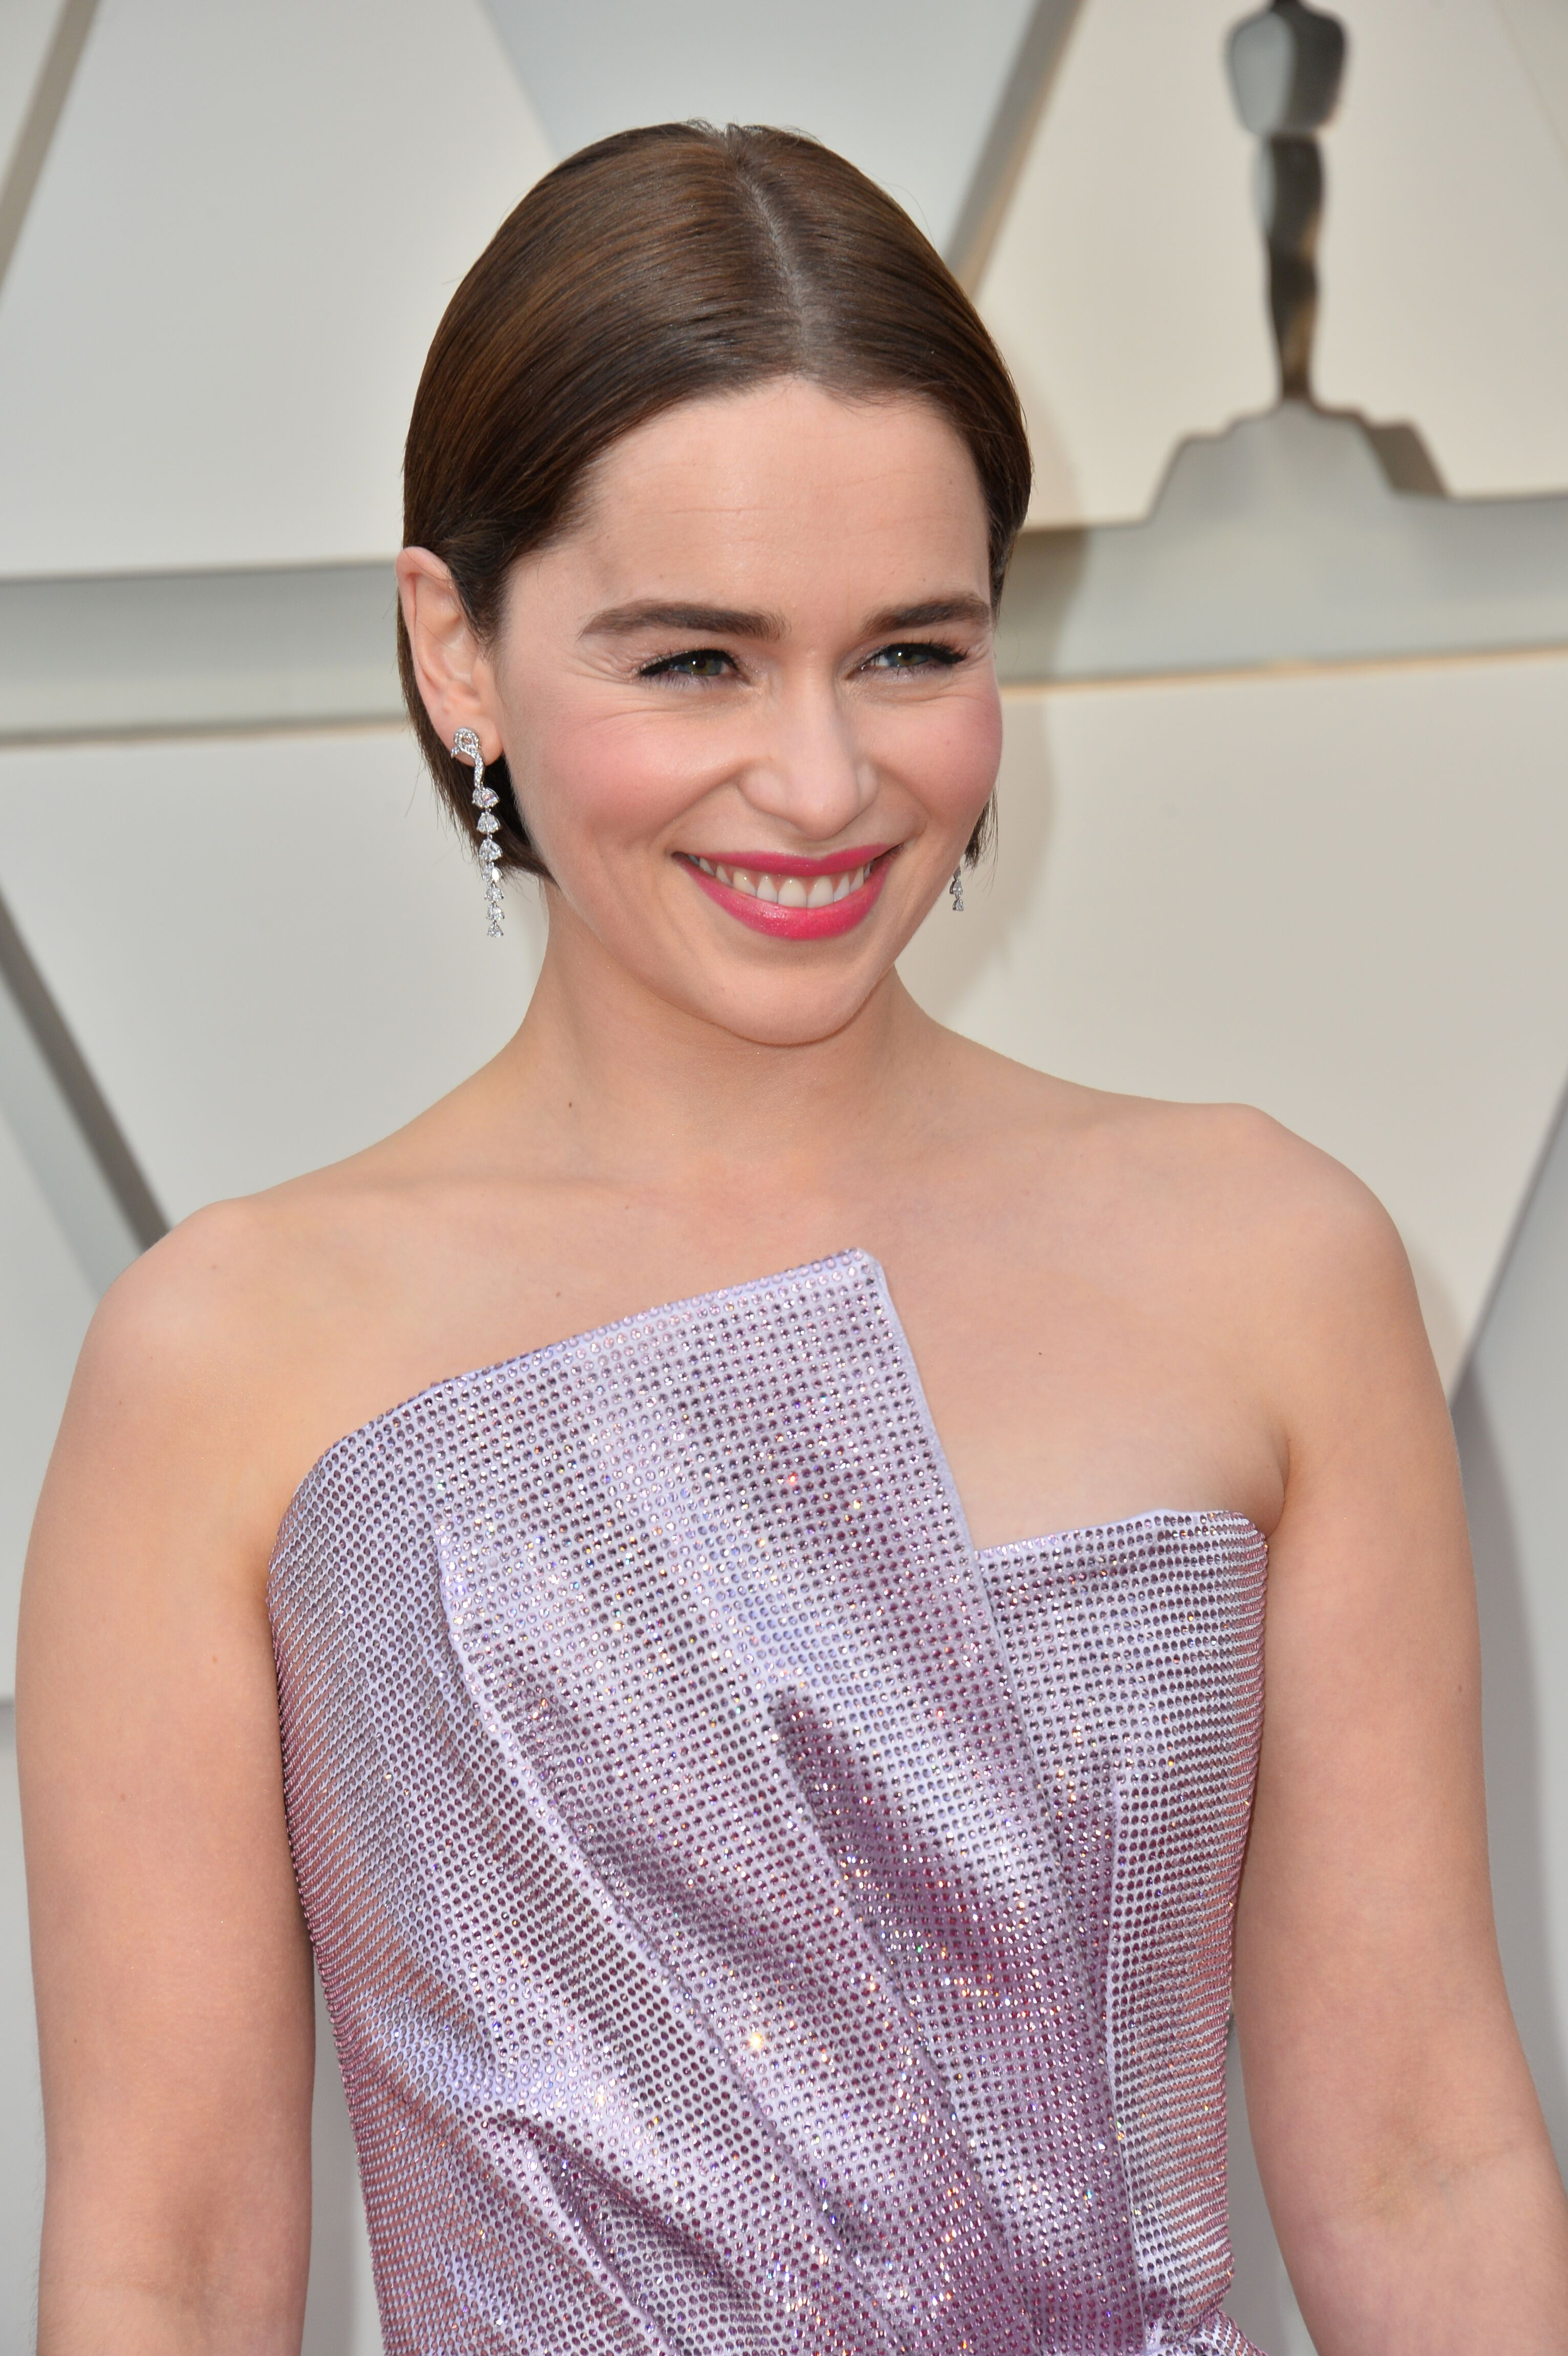 Emilia Clarke attends the 91st Annual Academy Awards. | Source: Getty Images